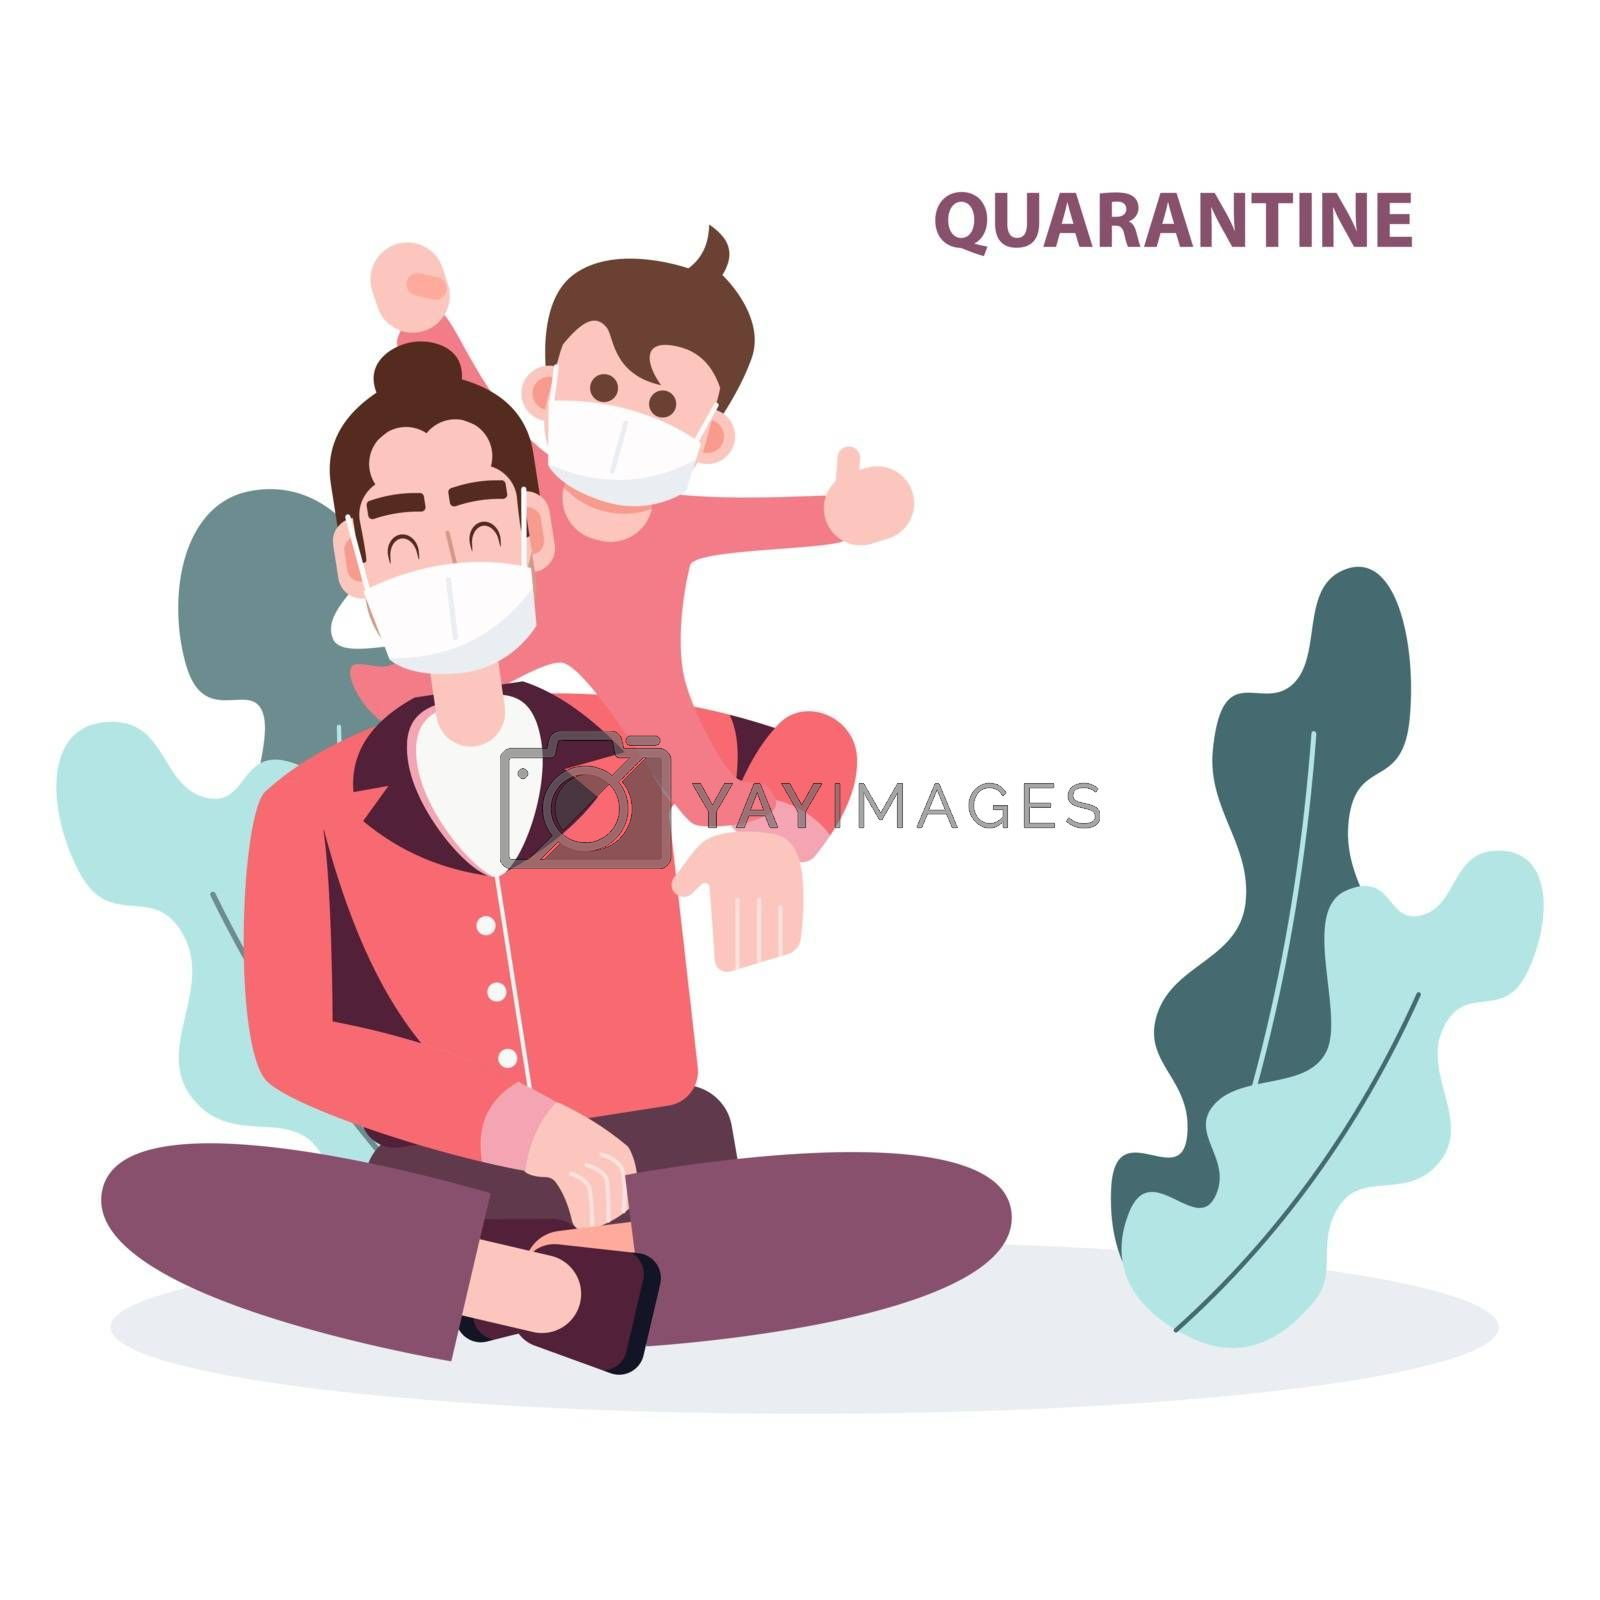 happy boy climbing on father shoulder staying at home. Abstract flat character people wearing mask quarantine from covid-19 pandemic coronavirus outbreak. health care and medical vector.